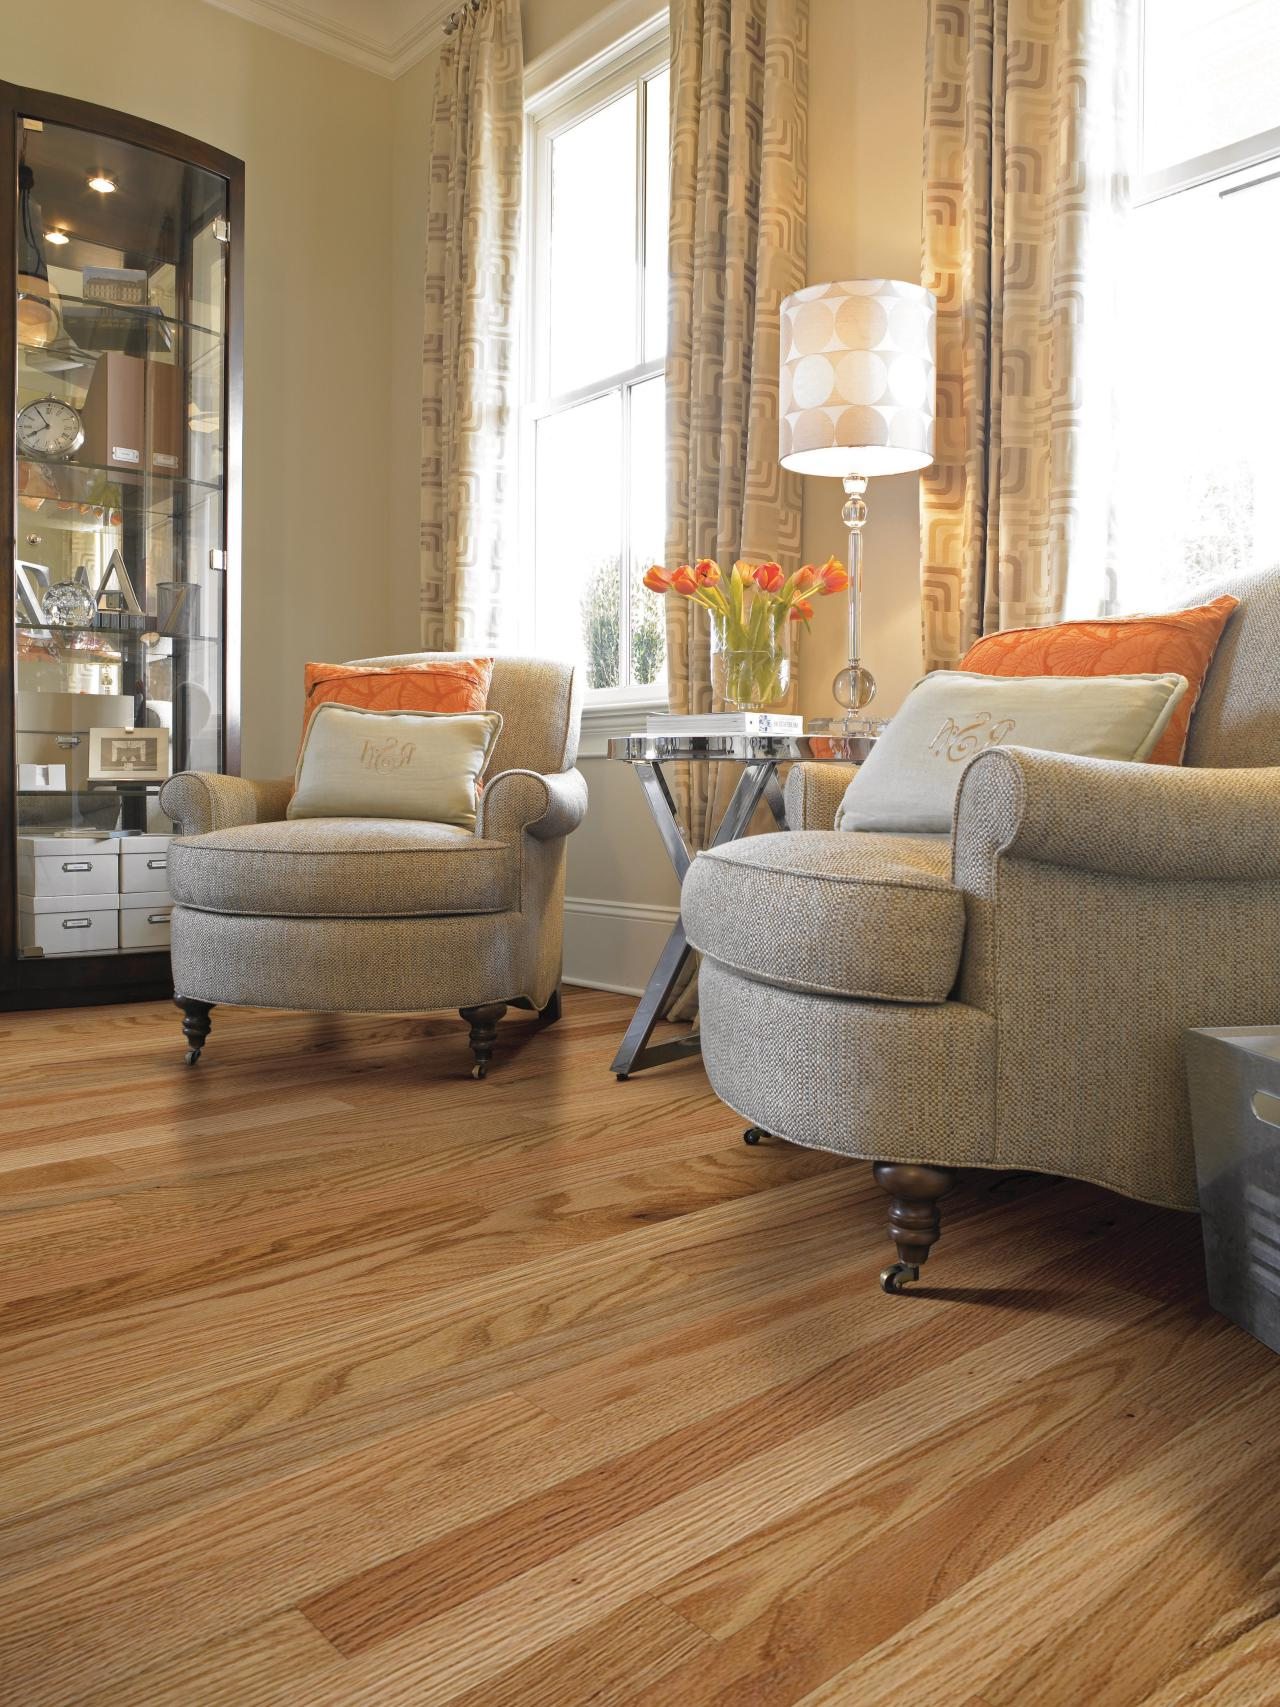 Best Flooring Options for Living Room  Roy Home Design